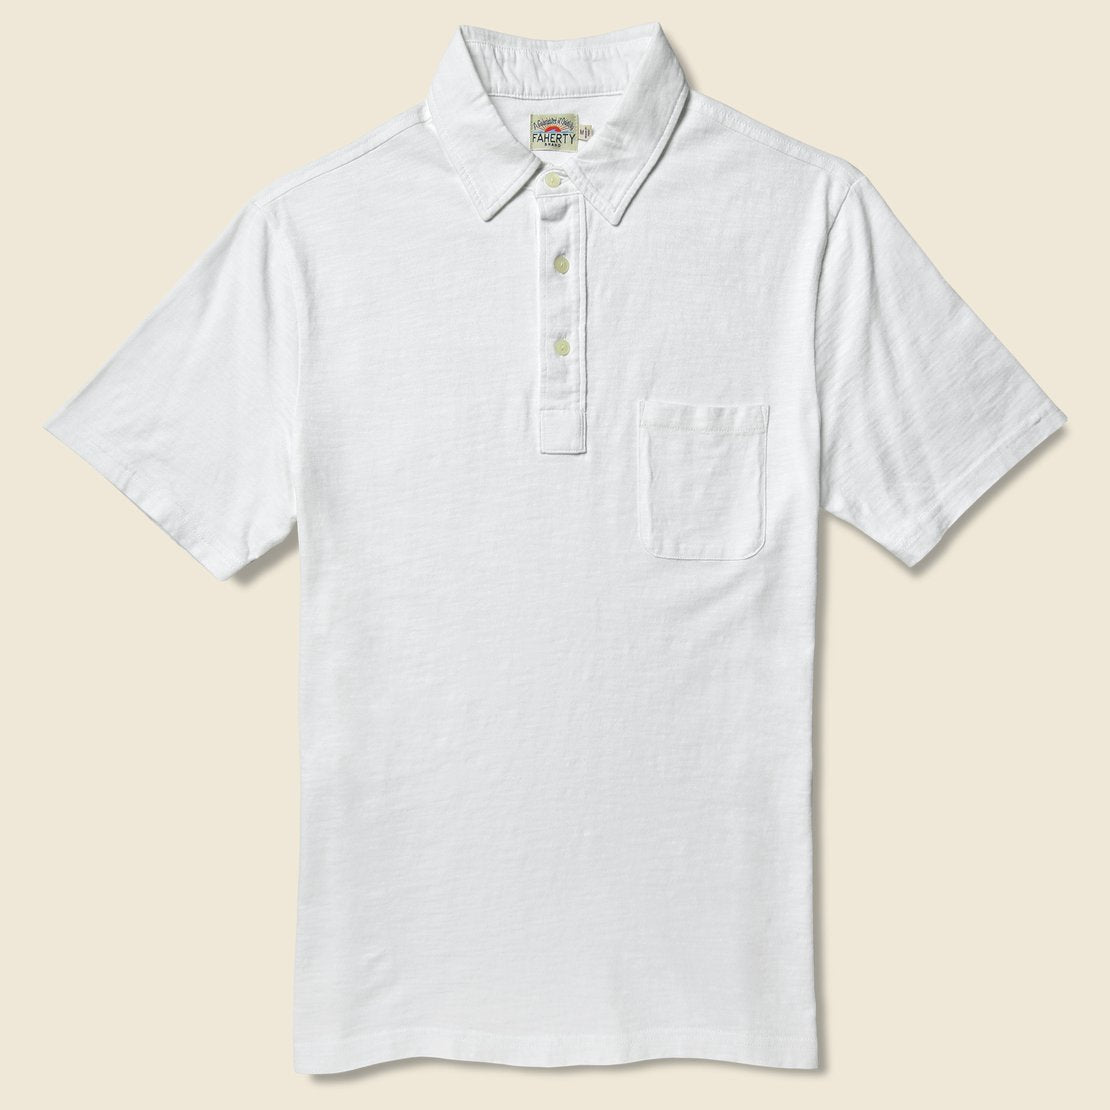 Faherty Garment Dyed Polo Shirt - White